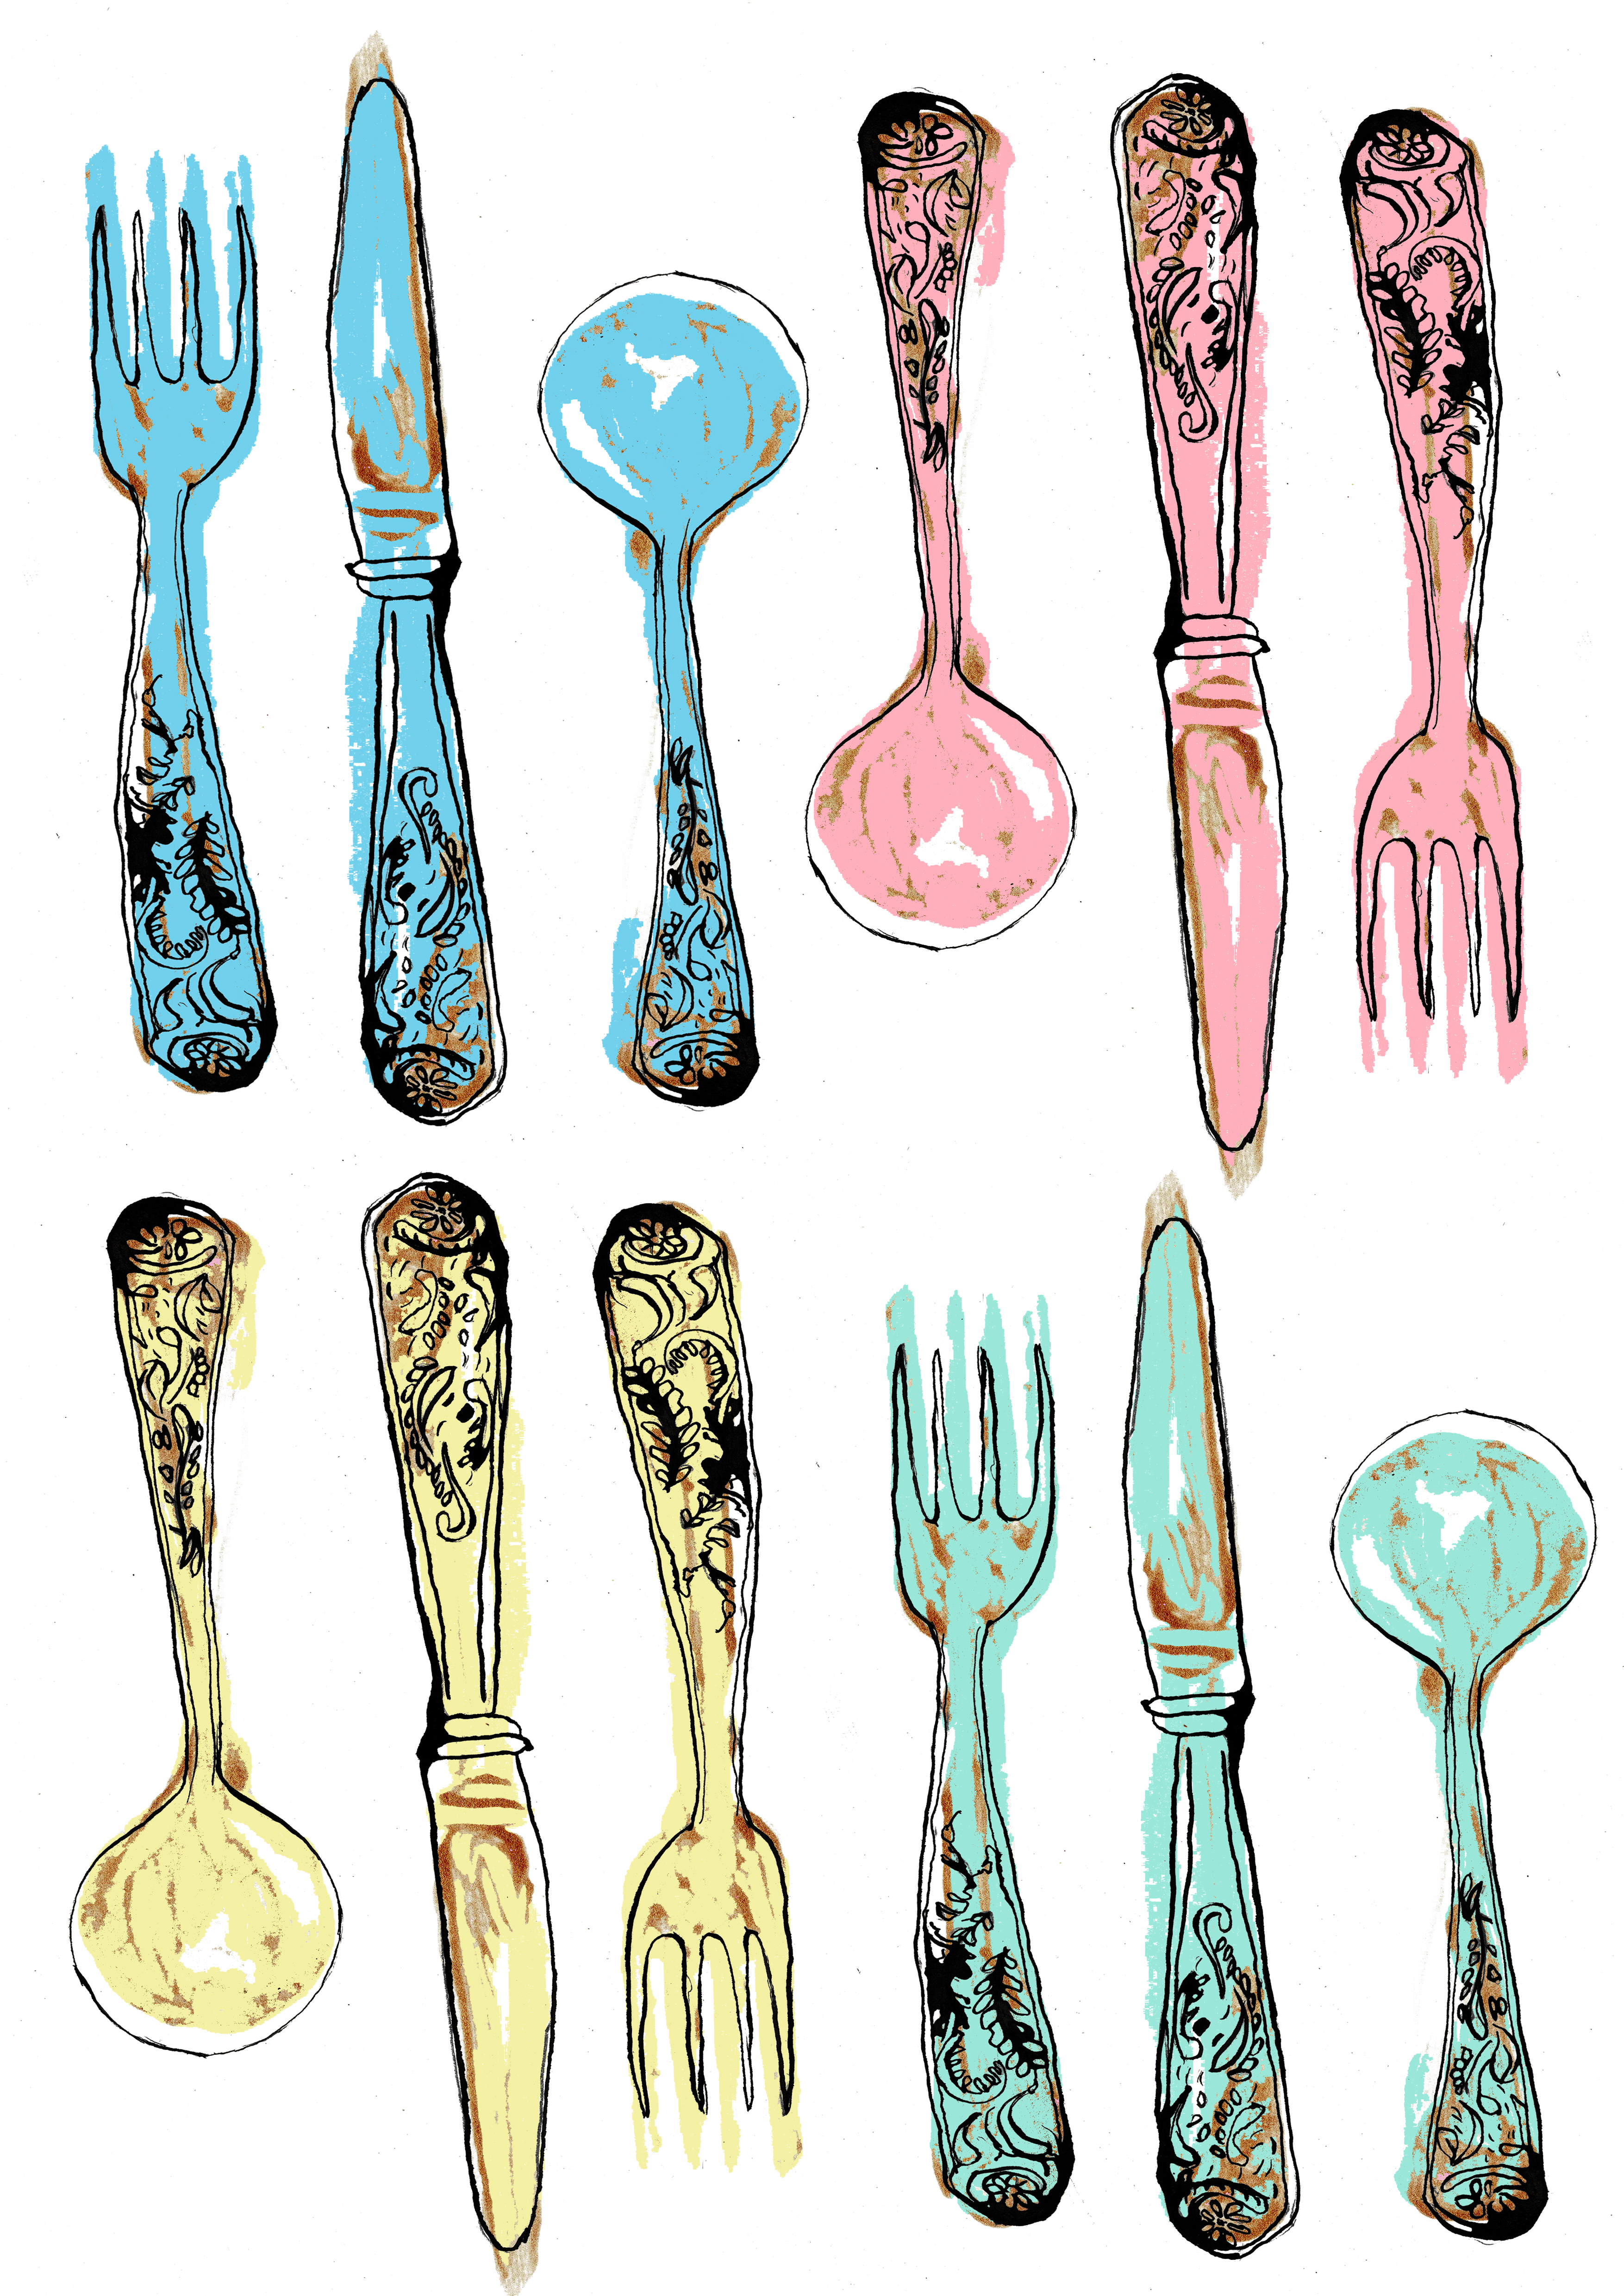 CW Illustrations cutlery print, using watercolour designs